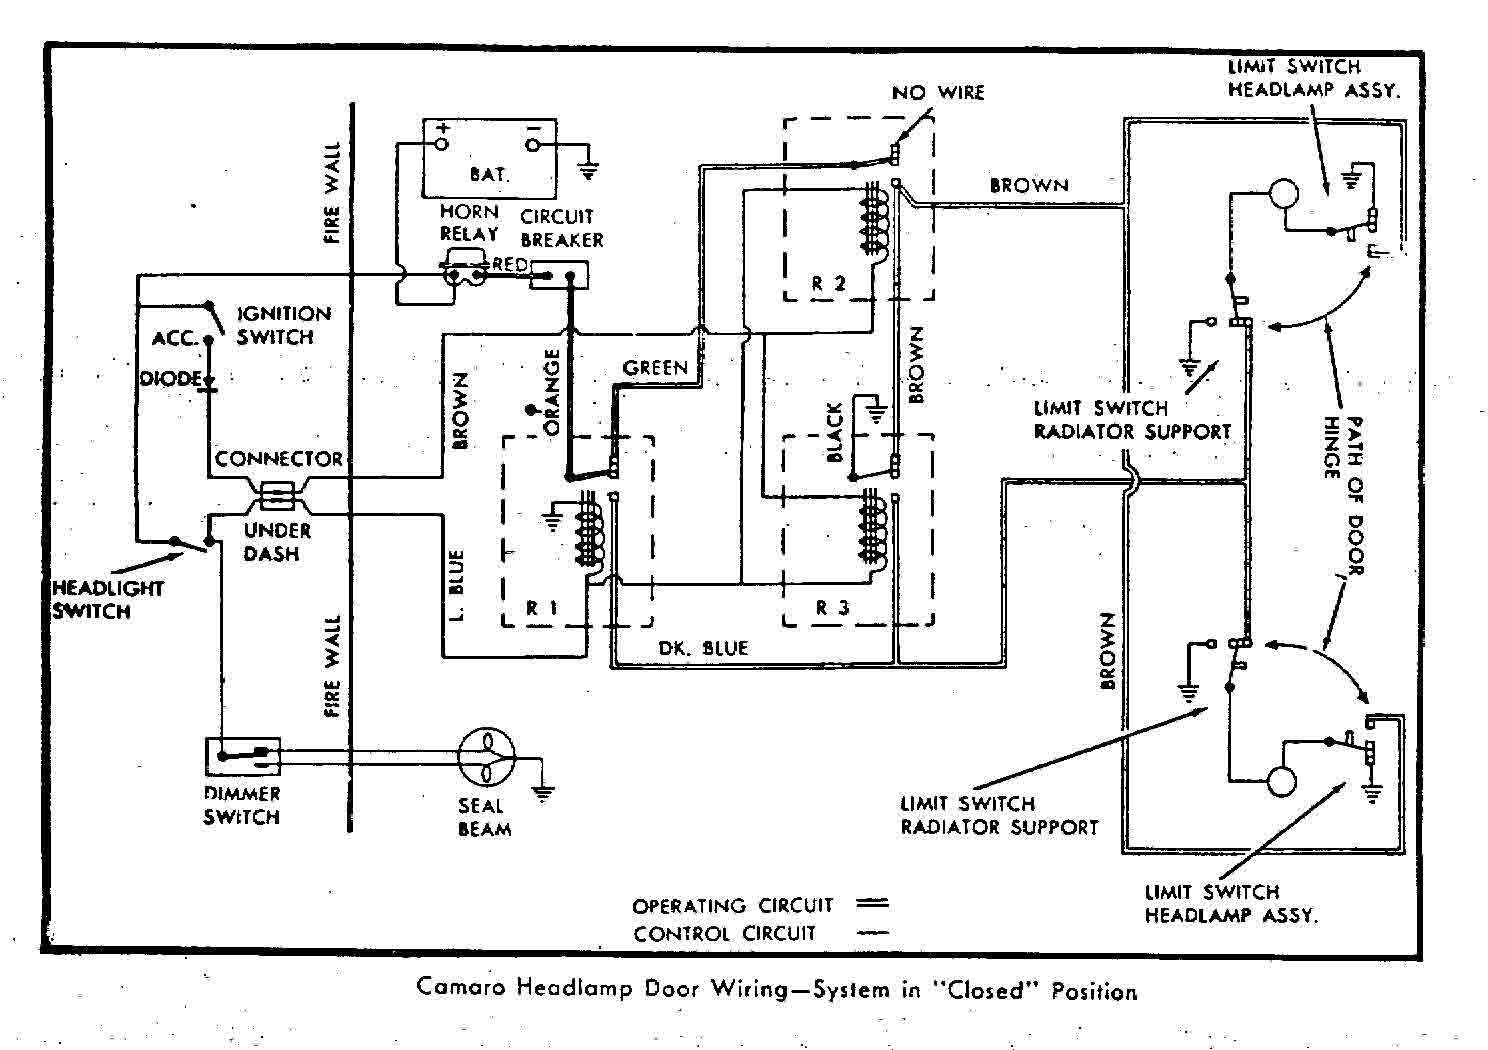 1968 Camaro Fuse Box Wiring Data Wiring Schema 1967 Camaro Fuse Block Diagram  80 Camaro Fuse Box Diagram